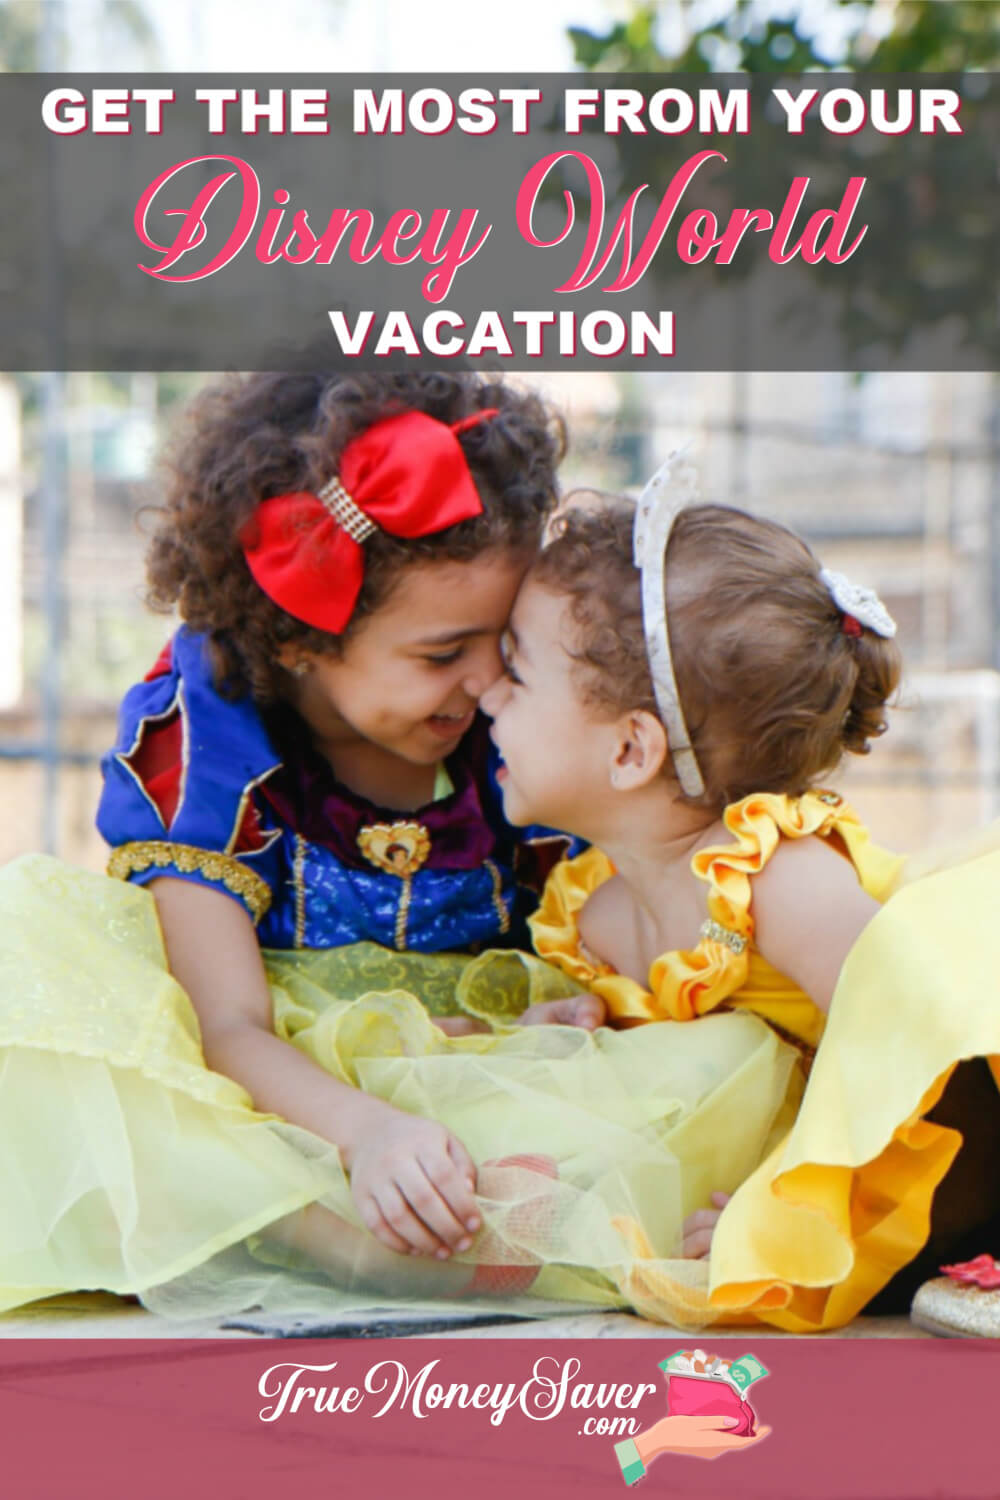 Your Disney World vacation is about so much more than just the rides and the parks. Get the most from your Disney vacation by following these tips! #disneyworld #disneyvacation #savingmoney #familyvacation #truemoneysaver